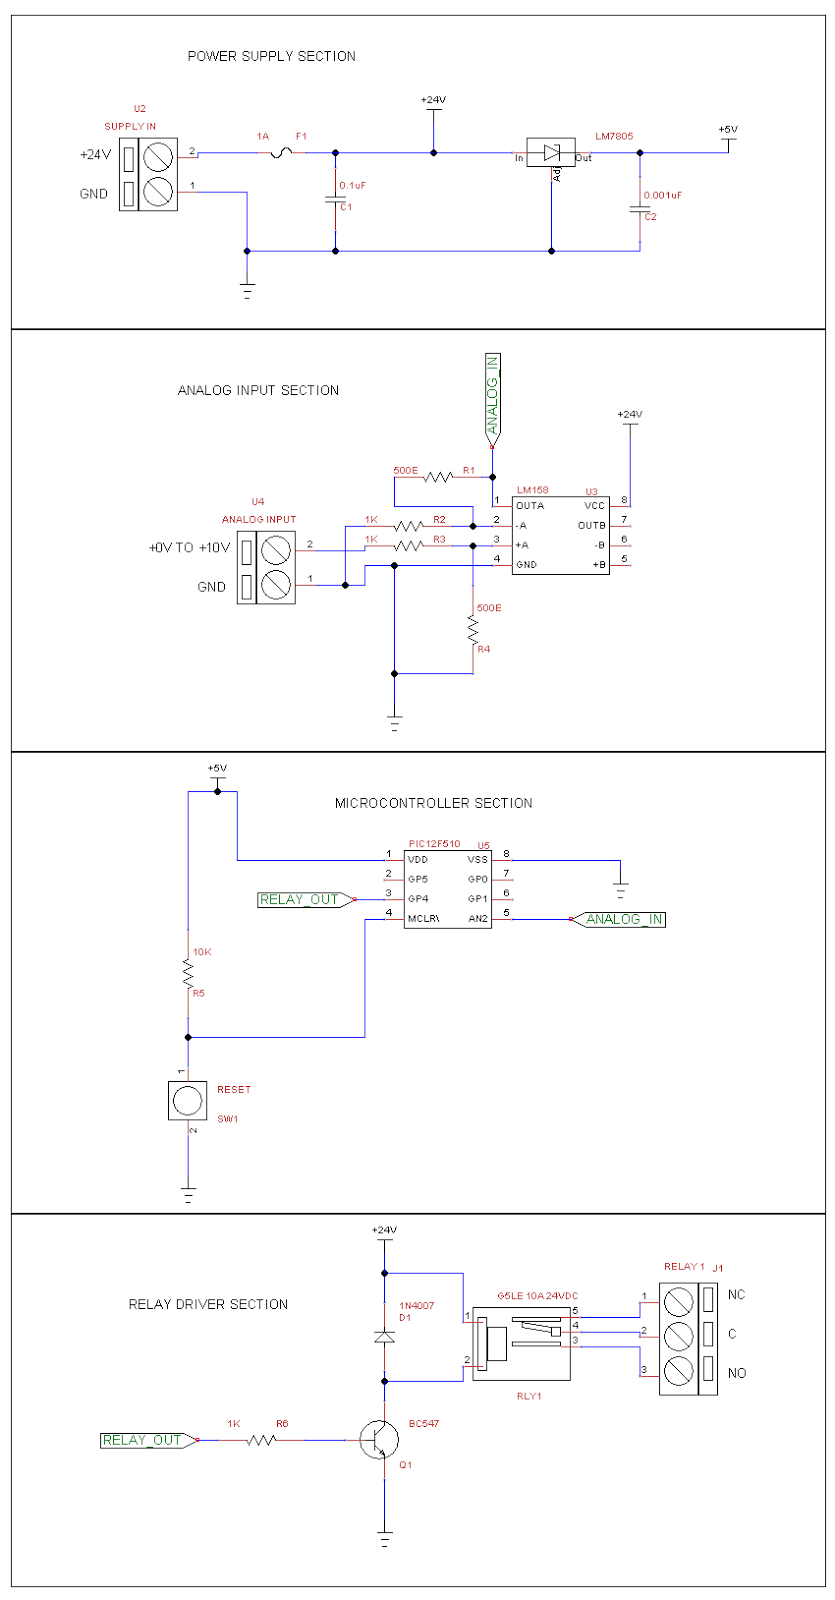 Pic12f510 Based Voltage Trigger Switch Industrial Embedded Life Wiring Diagram Most Of The Automation Circuits Makes Use Terminal Blocks In Their Circuit Where You Can Plug Multi Stranded Wire